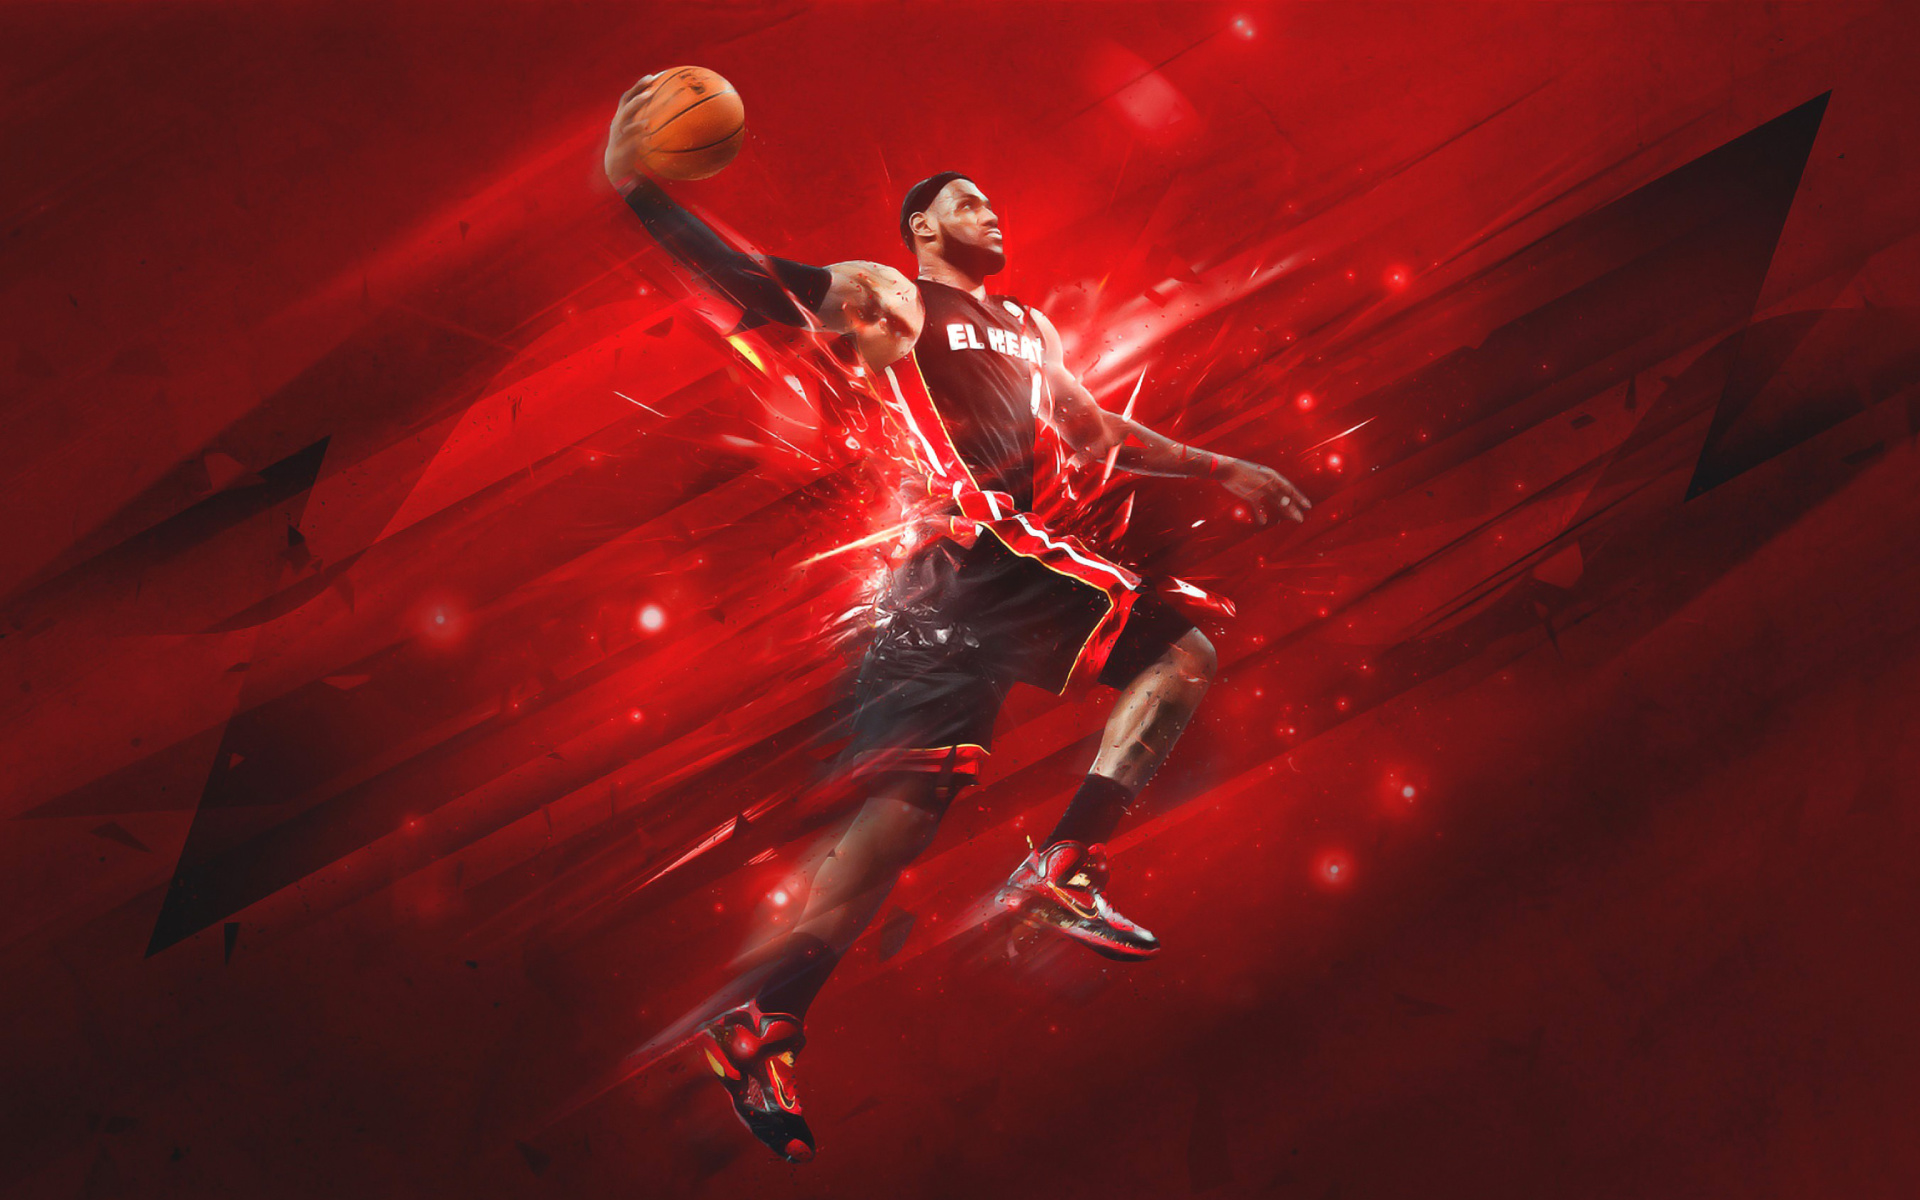 Lebron James Wallpaper For Widescreen Desktop Pc 1920x1080